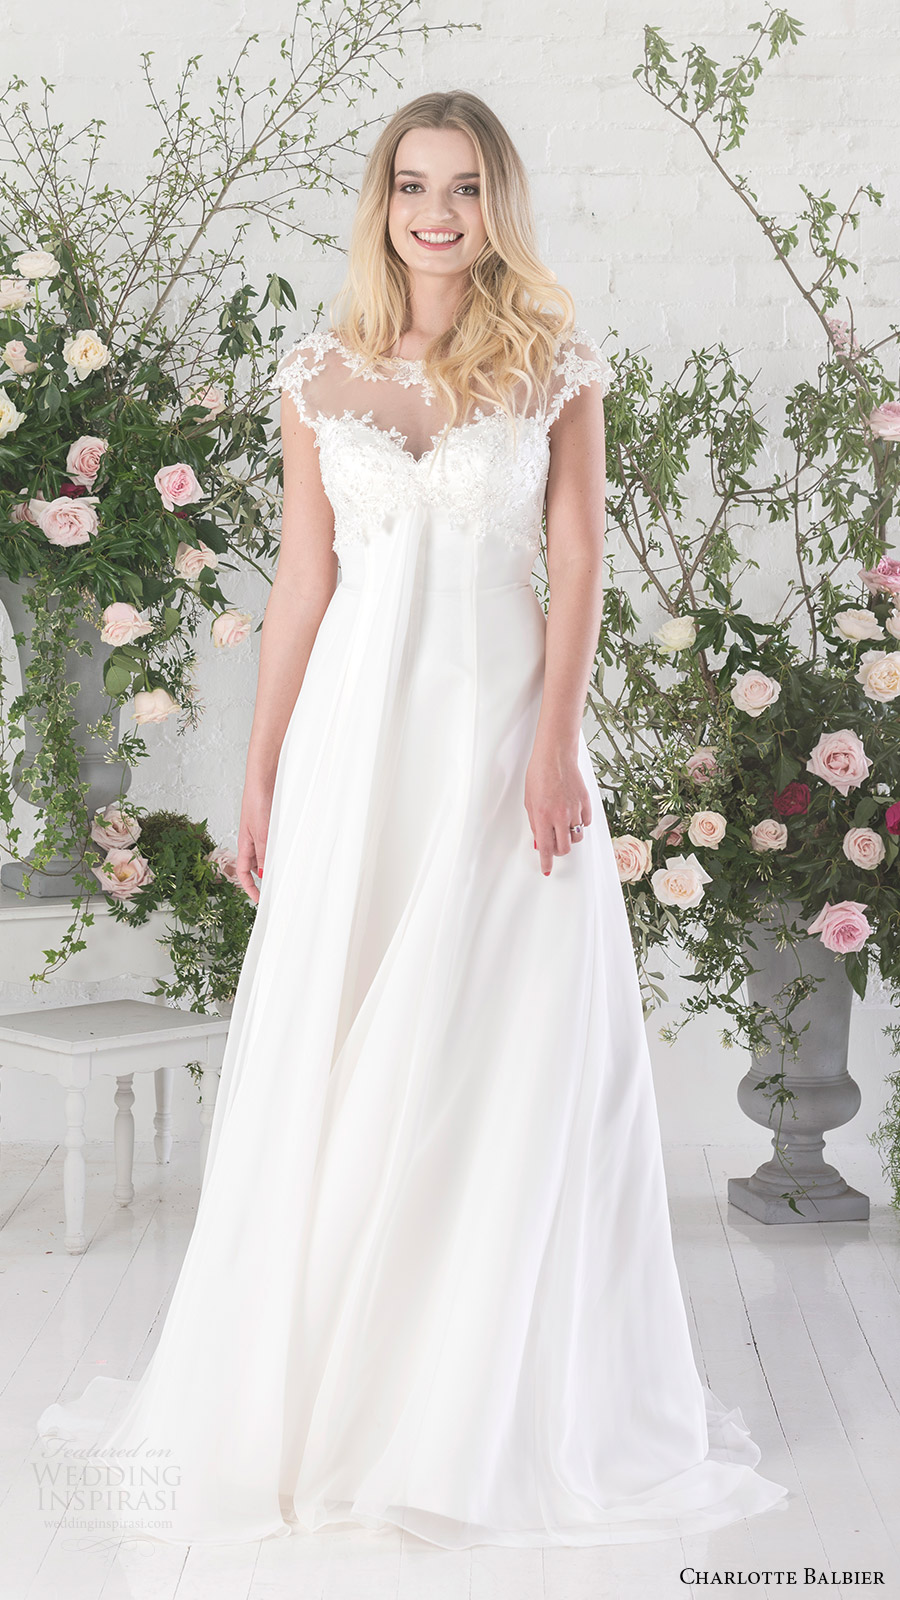 charlotte balbier bridal 2017 cap sleeves illusion bateau neck aline wedding dress (sofia) mv